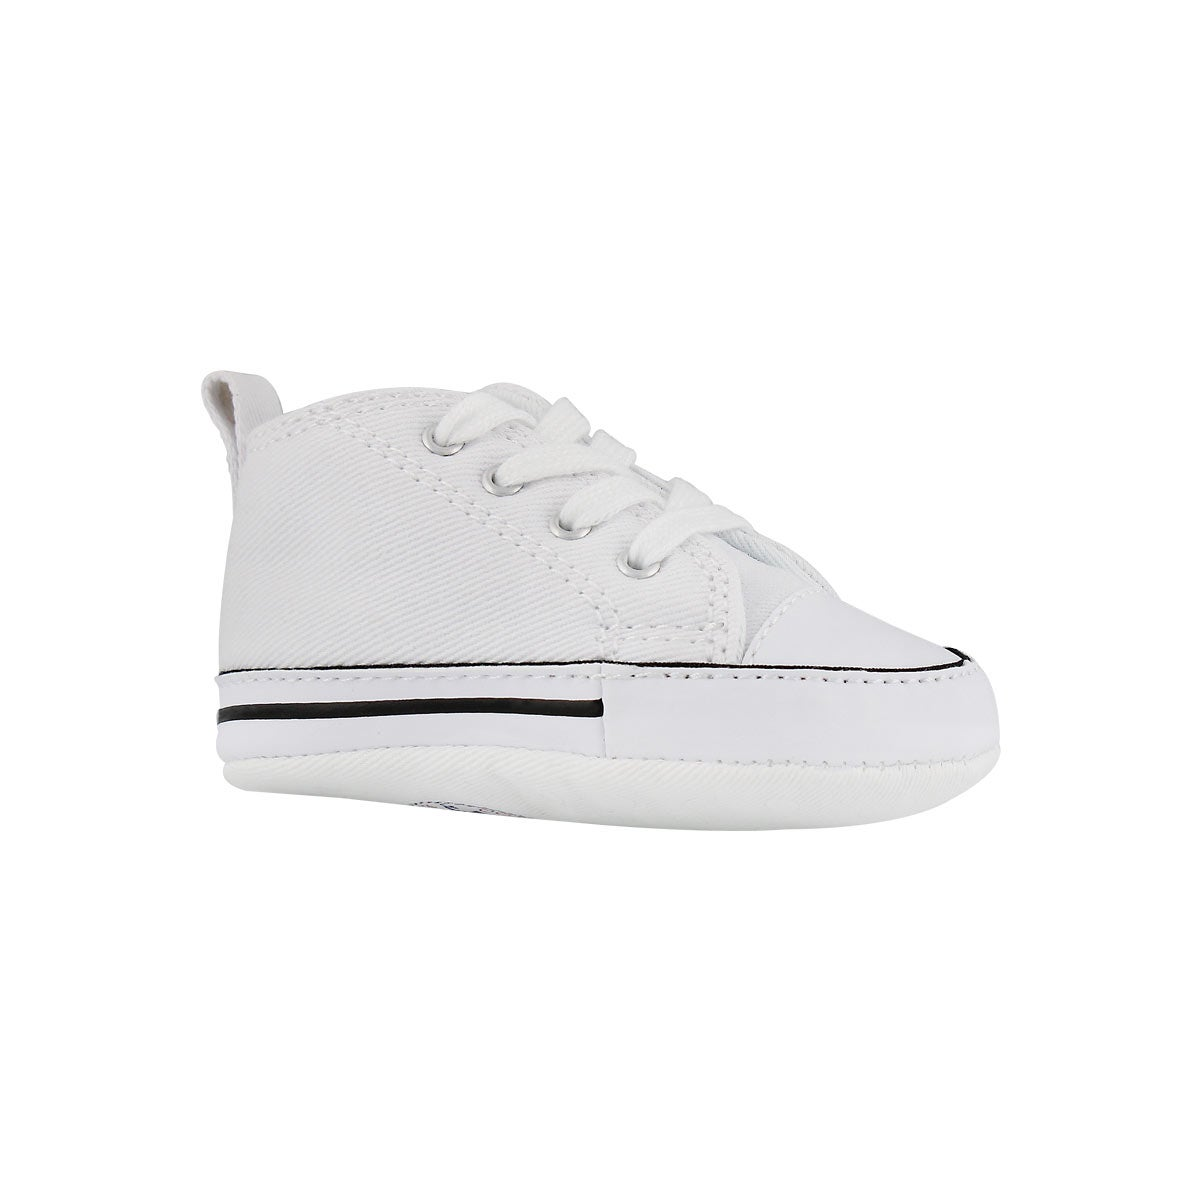 Inf CTAS Crib white canvas sneaker